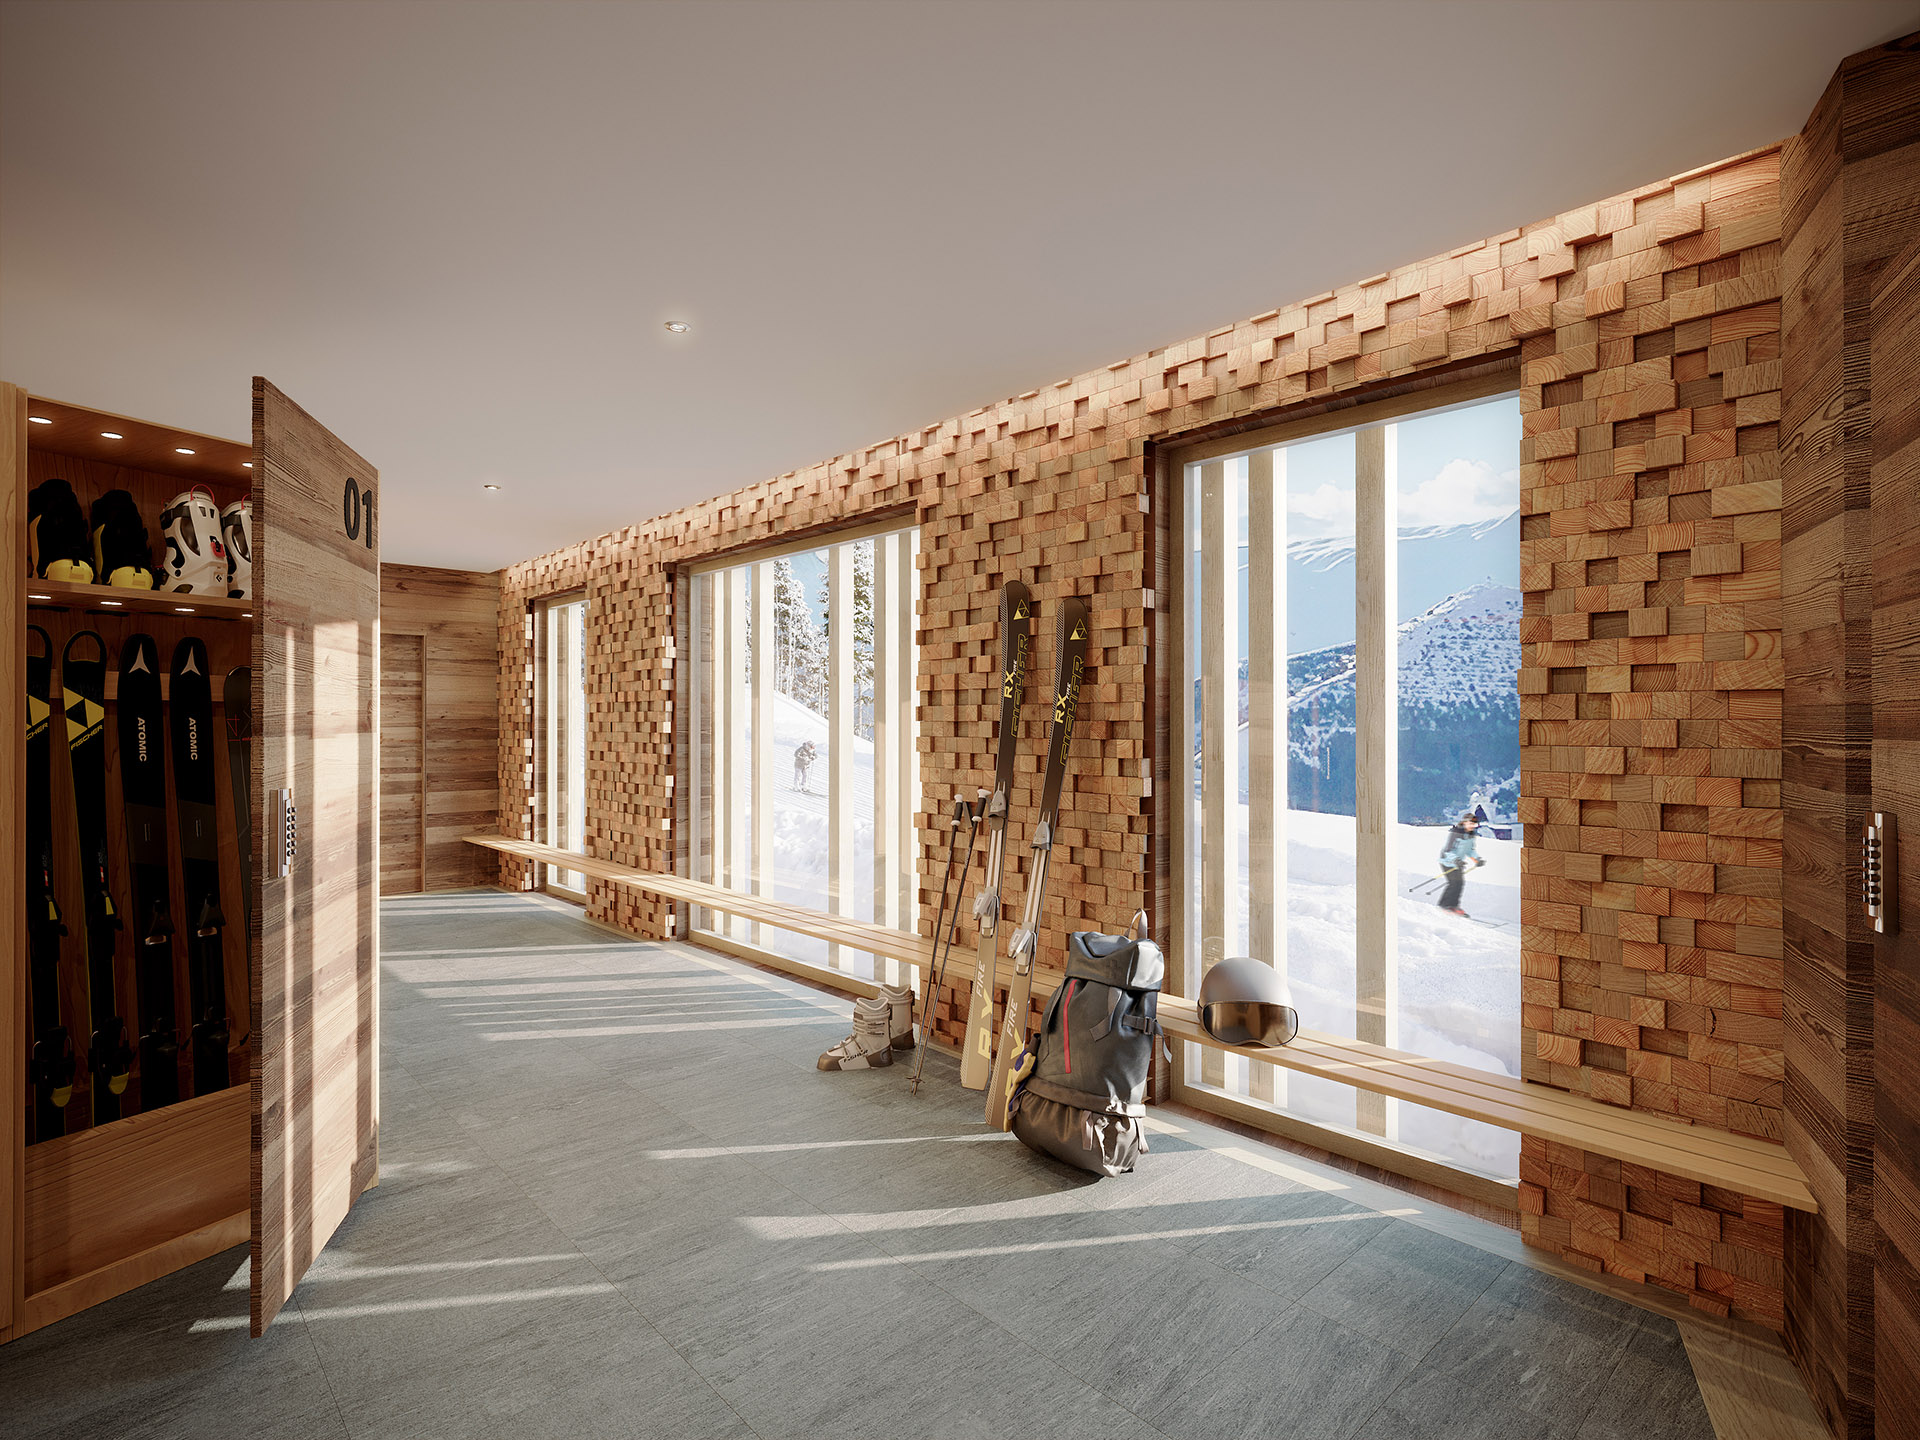 3D representation of a modern ski room in a mountain chalet